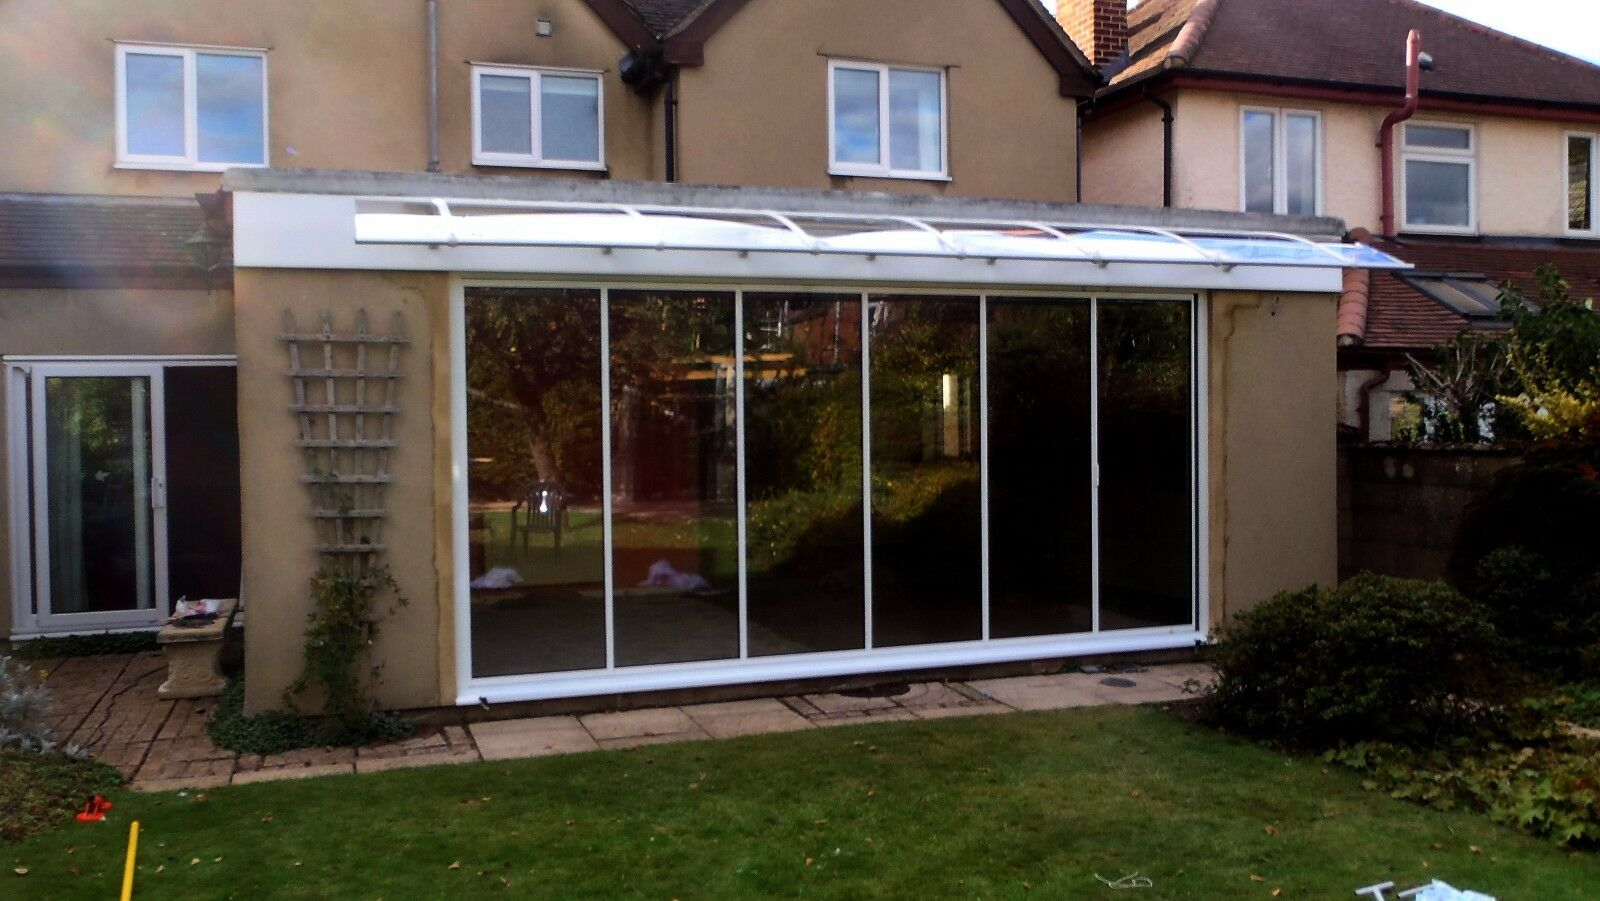 1500x2000mm DIY Door Canopy Polycarbonate Cantilever Garden Garden Garden Porch Patio Walkway 6c8eee